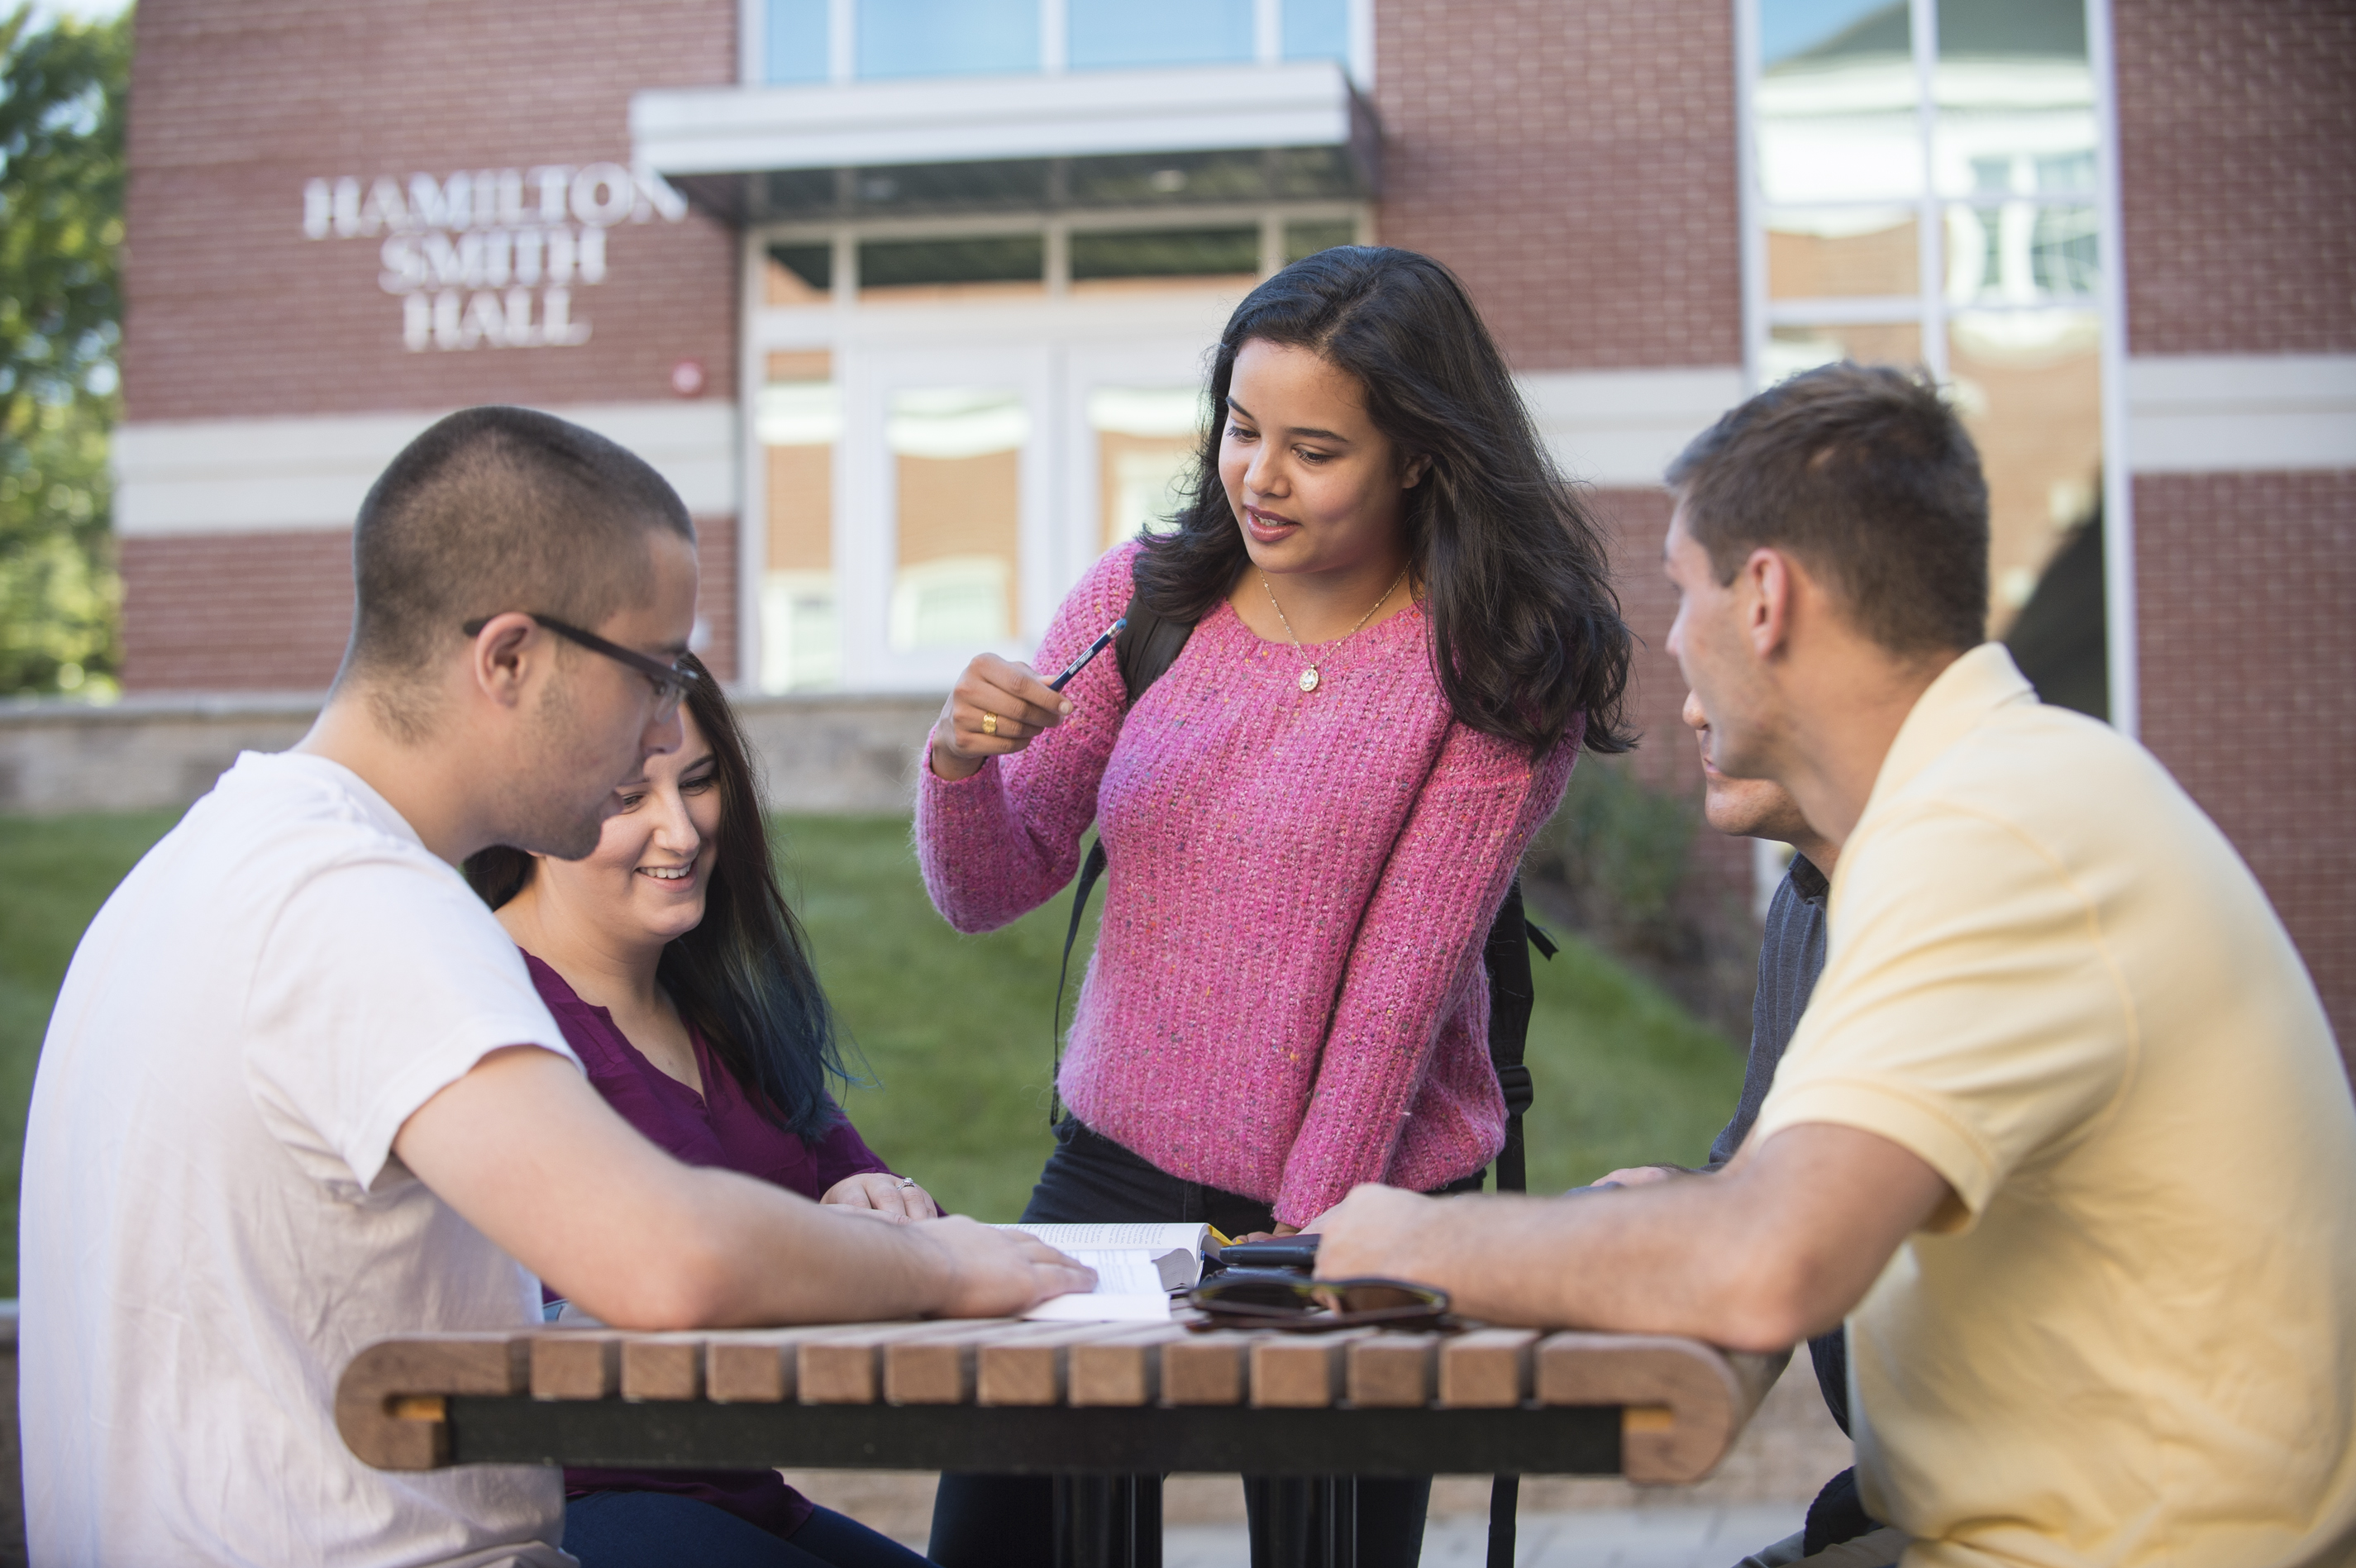 Image of students working together in front of Hamilton Smith Hall